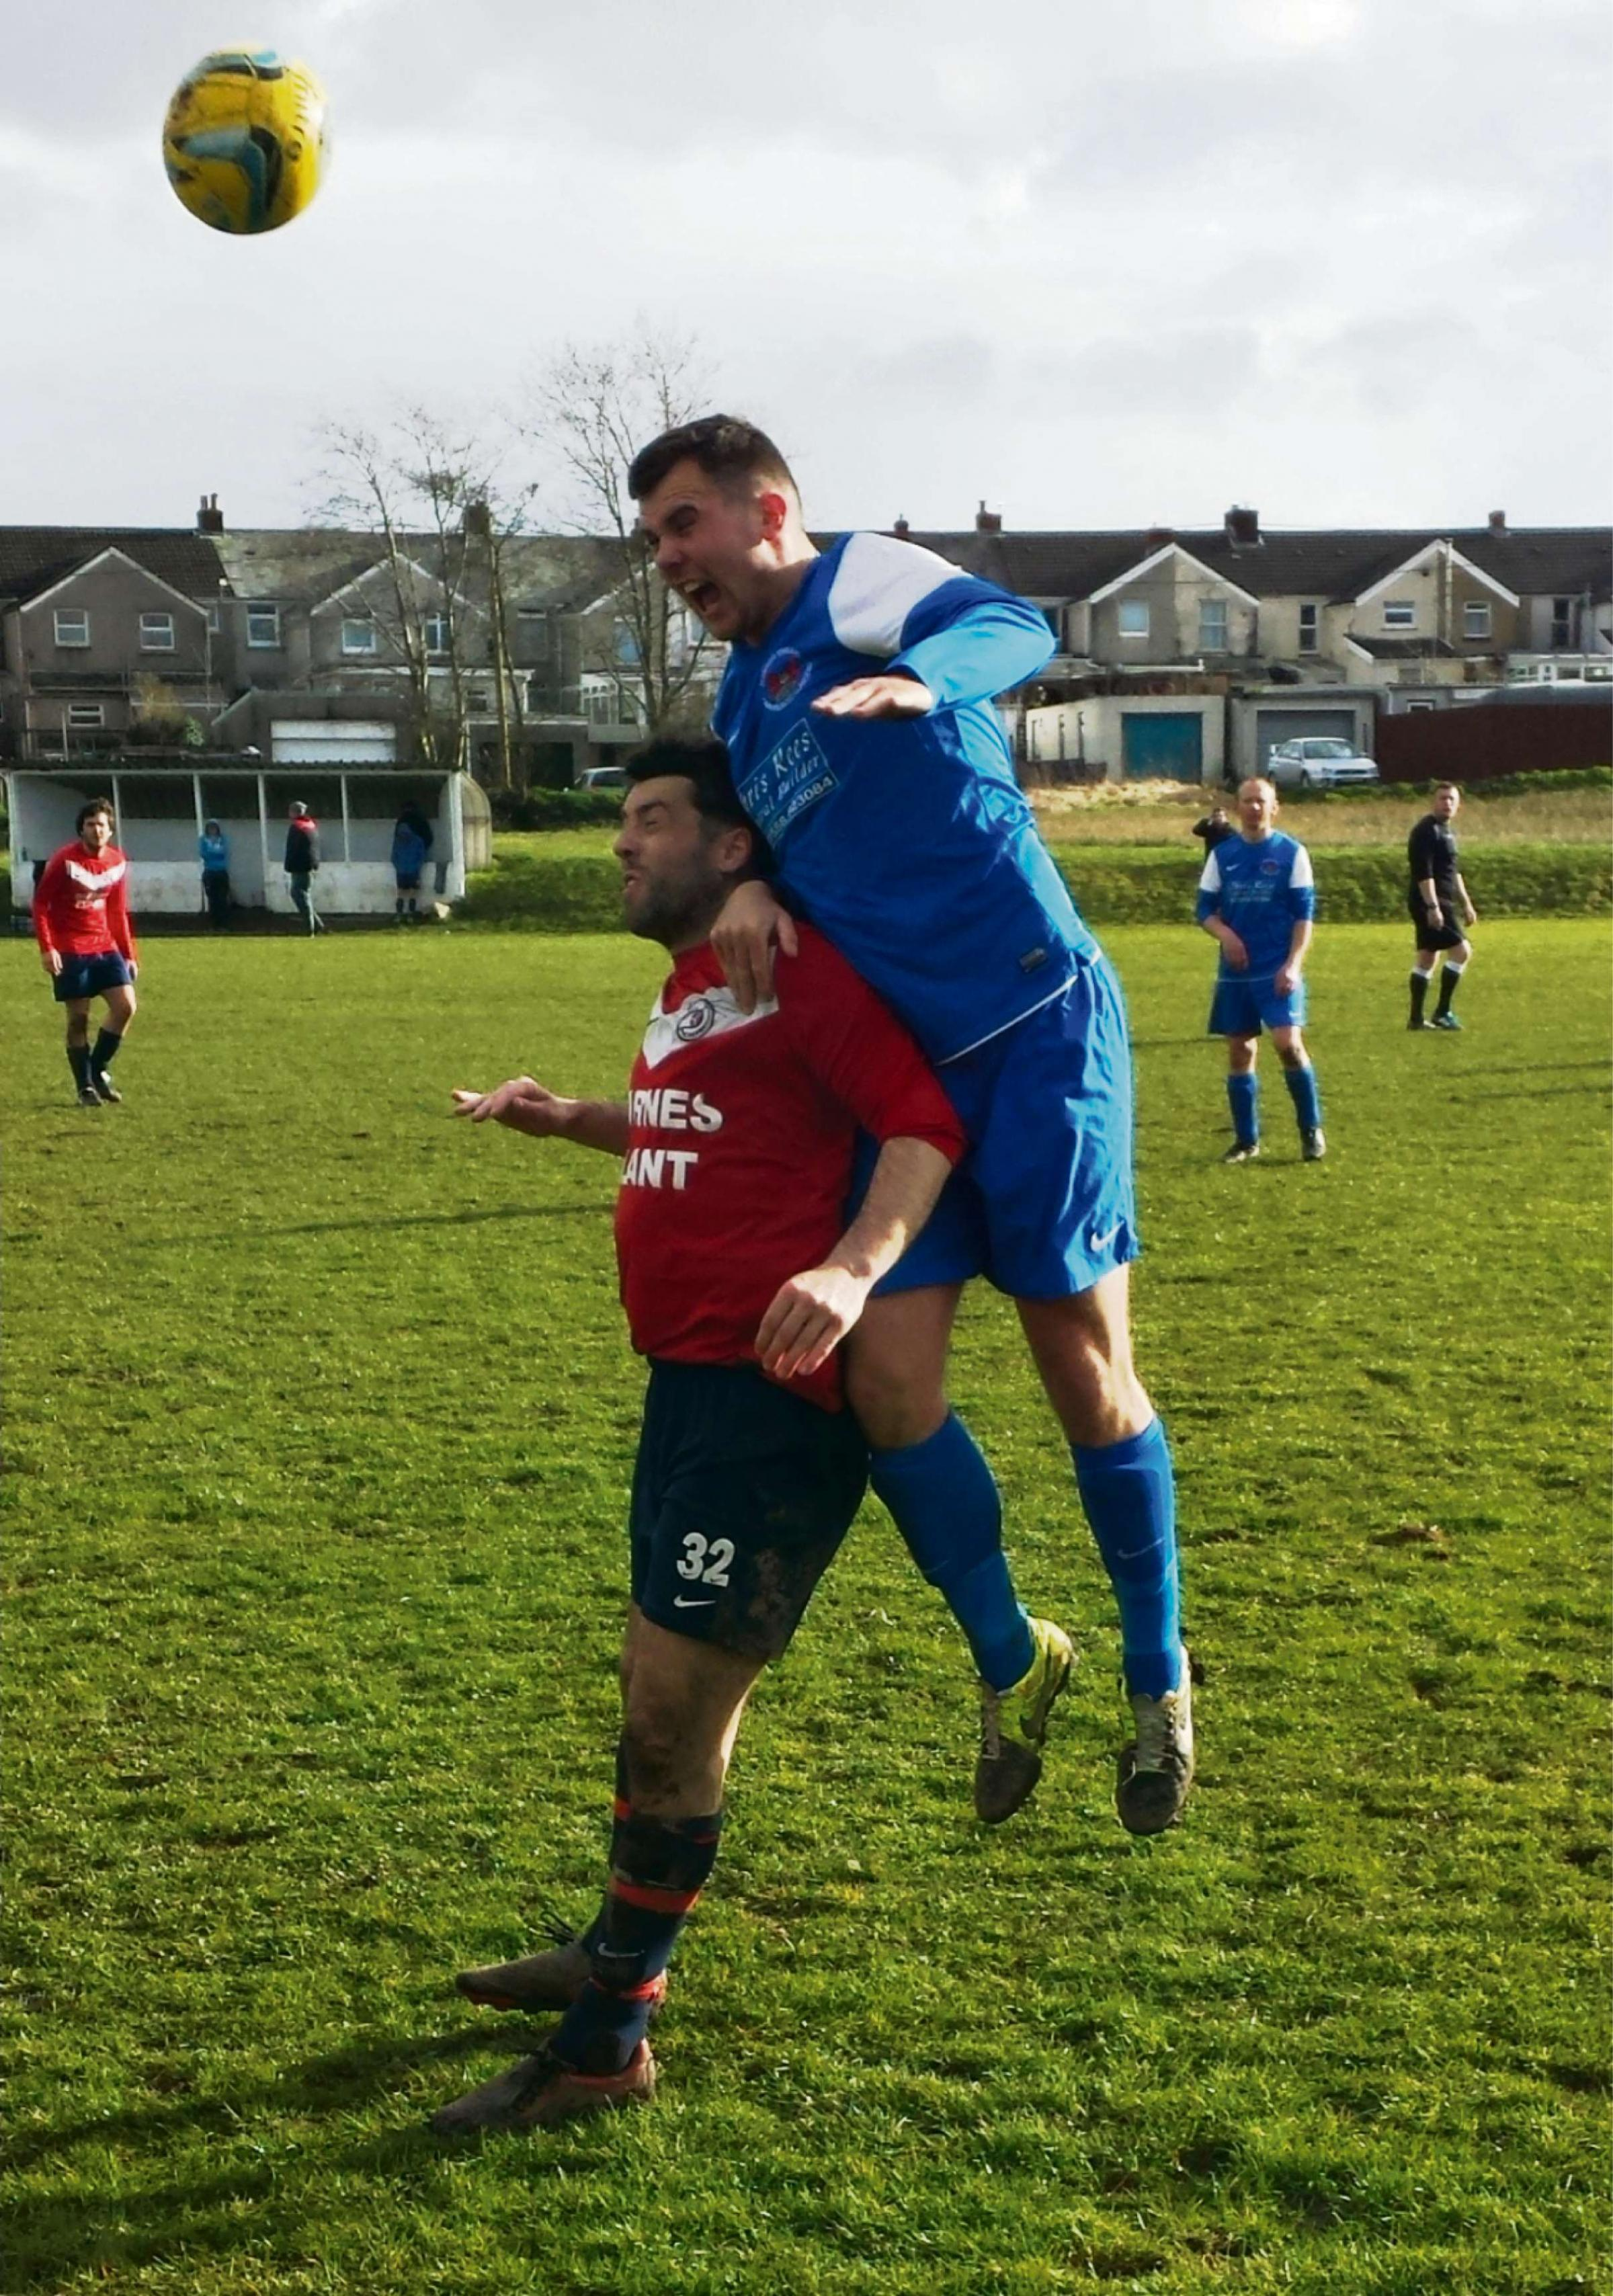 CLIMBING HIGH: Llandeilo goal-scorer Jamie Woodall towers above the Caerbryn defender in the 4-0 win.